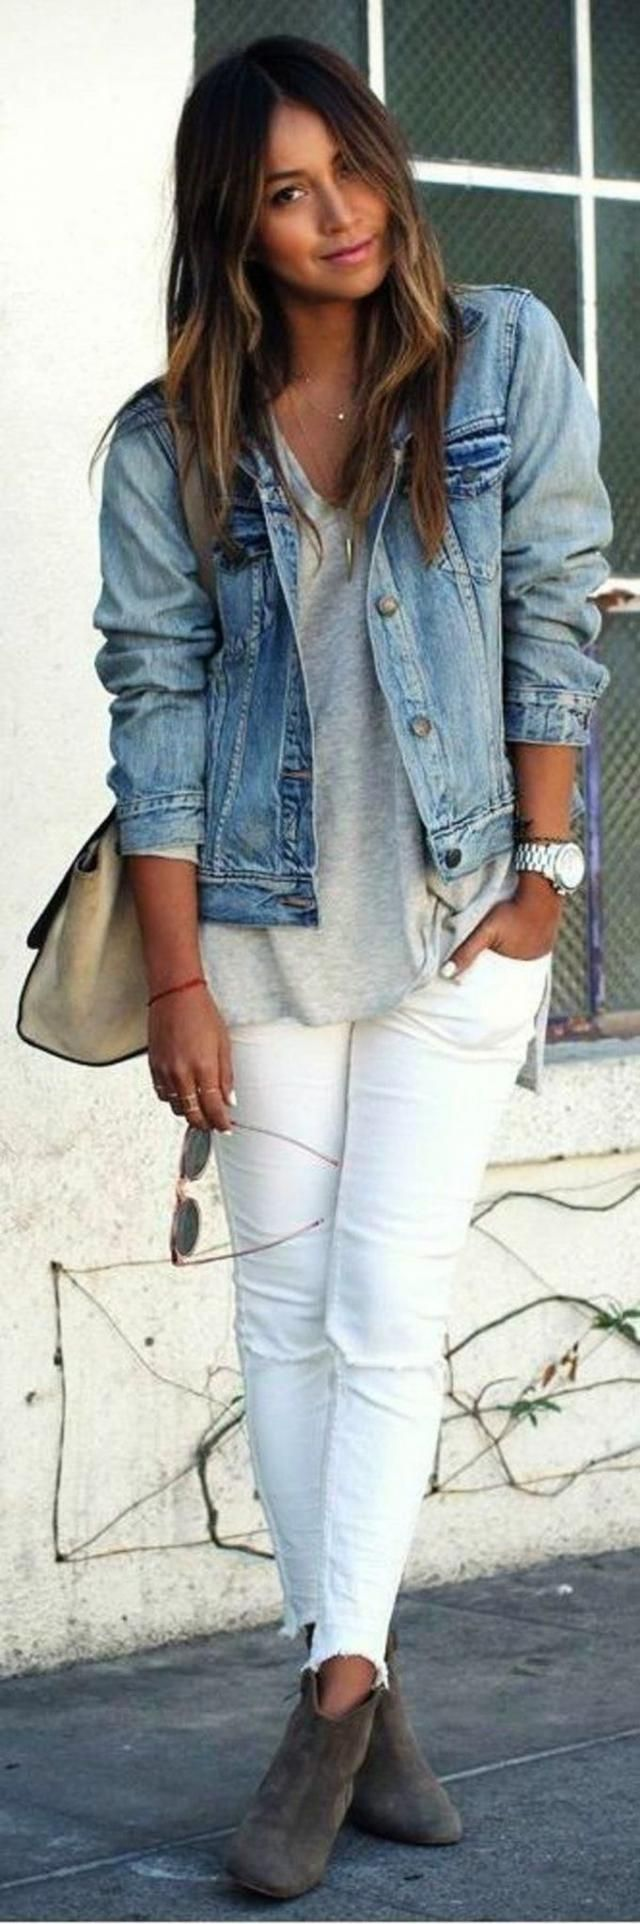 ZAFUL Denim Jacket